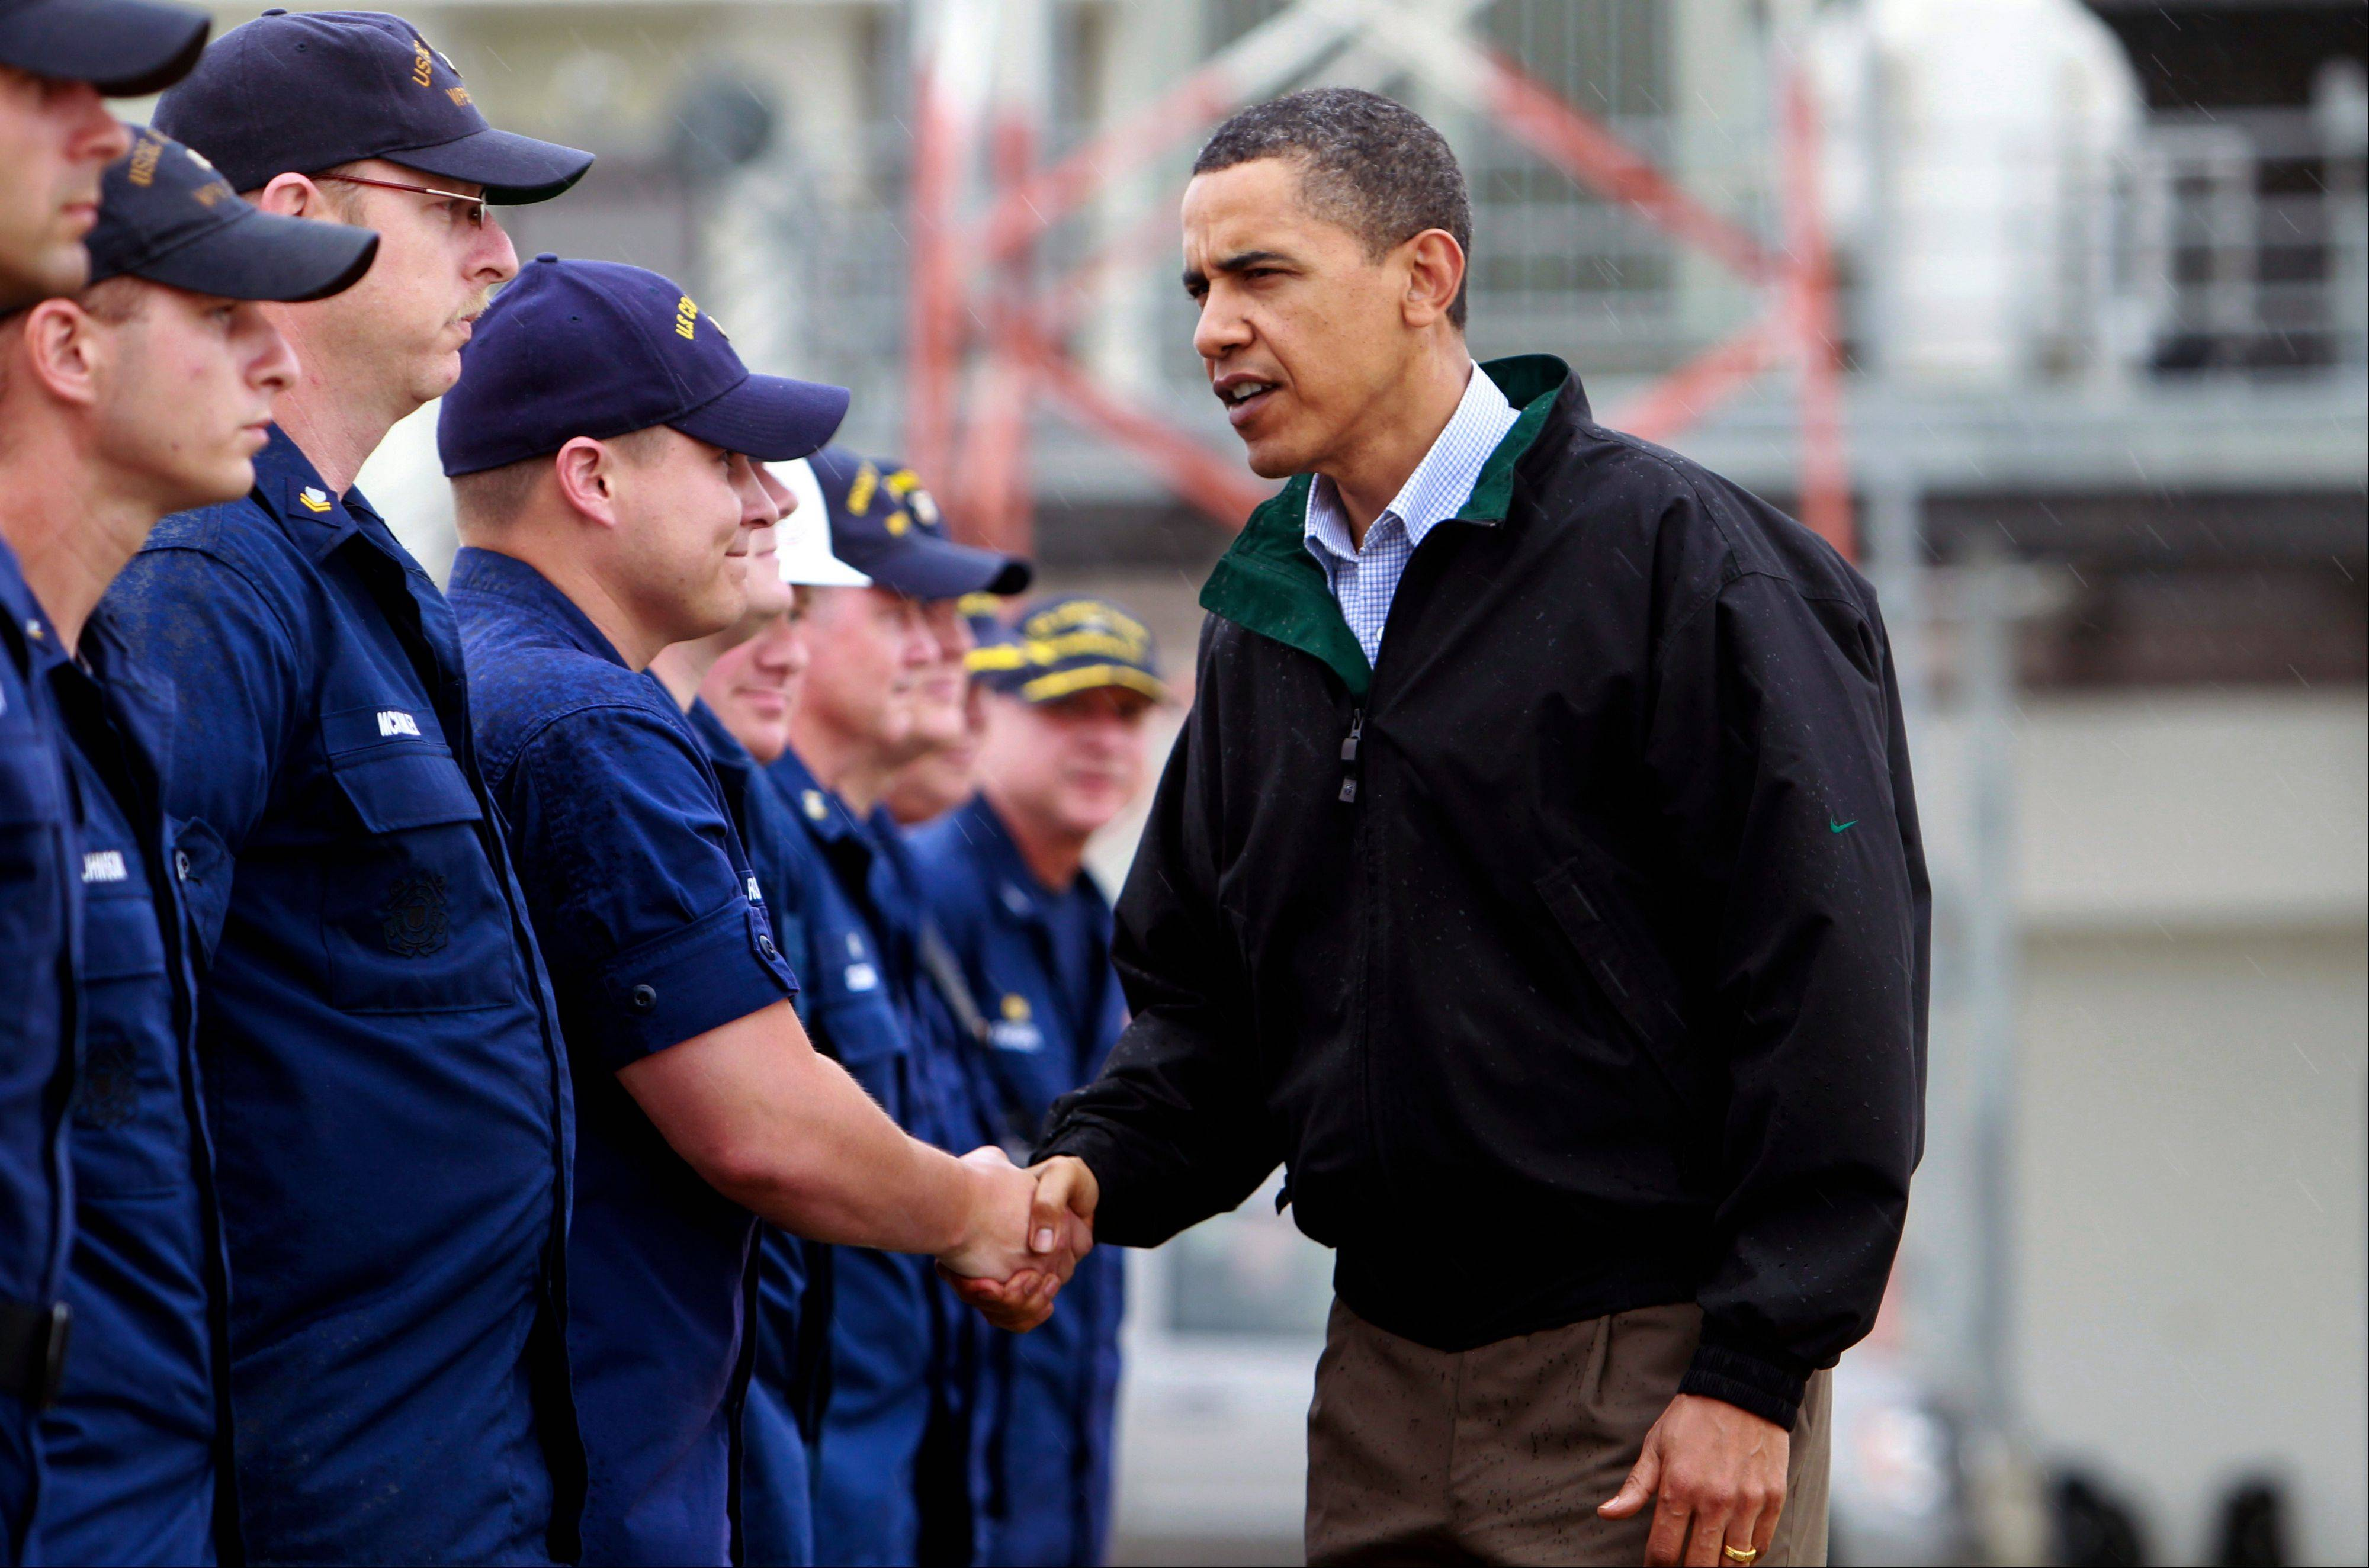 In this May 2, 2010, file photo, President Barack Obama meets coast guard first responders in Venice, La., as he visits the Gulf Coast region affected by the BP (British Petroleum) oil well spill. President Obama tweaked his travel plans to head to Louisiana on Monday, Sept. 3, 2012, to see the damage from Hurricane Isaac ahead of his own nominating convention -- shortly after Republican presidential candidate Mitt Romney toured the area.